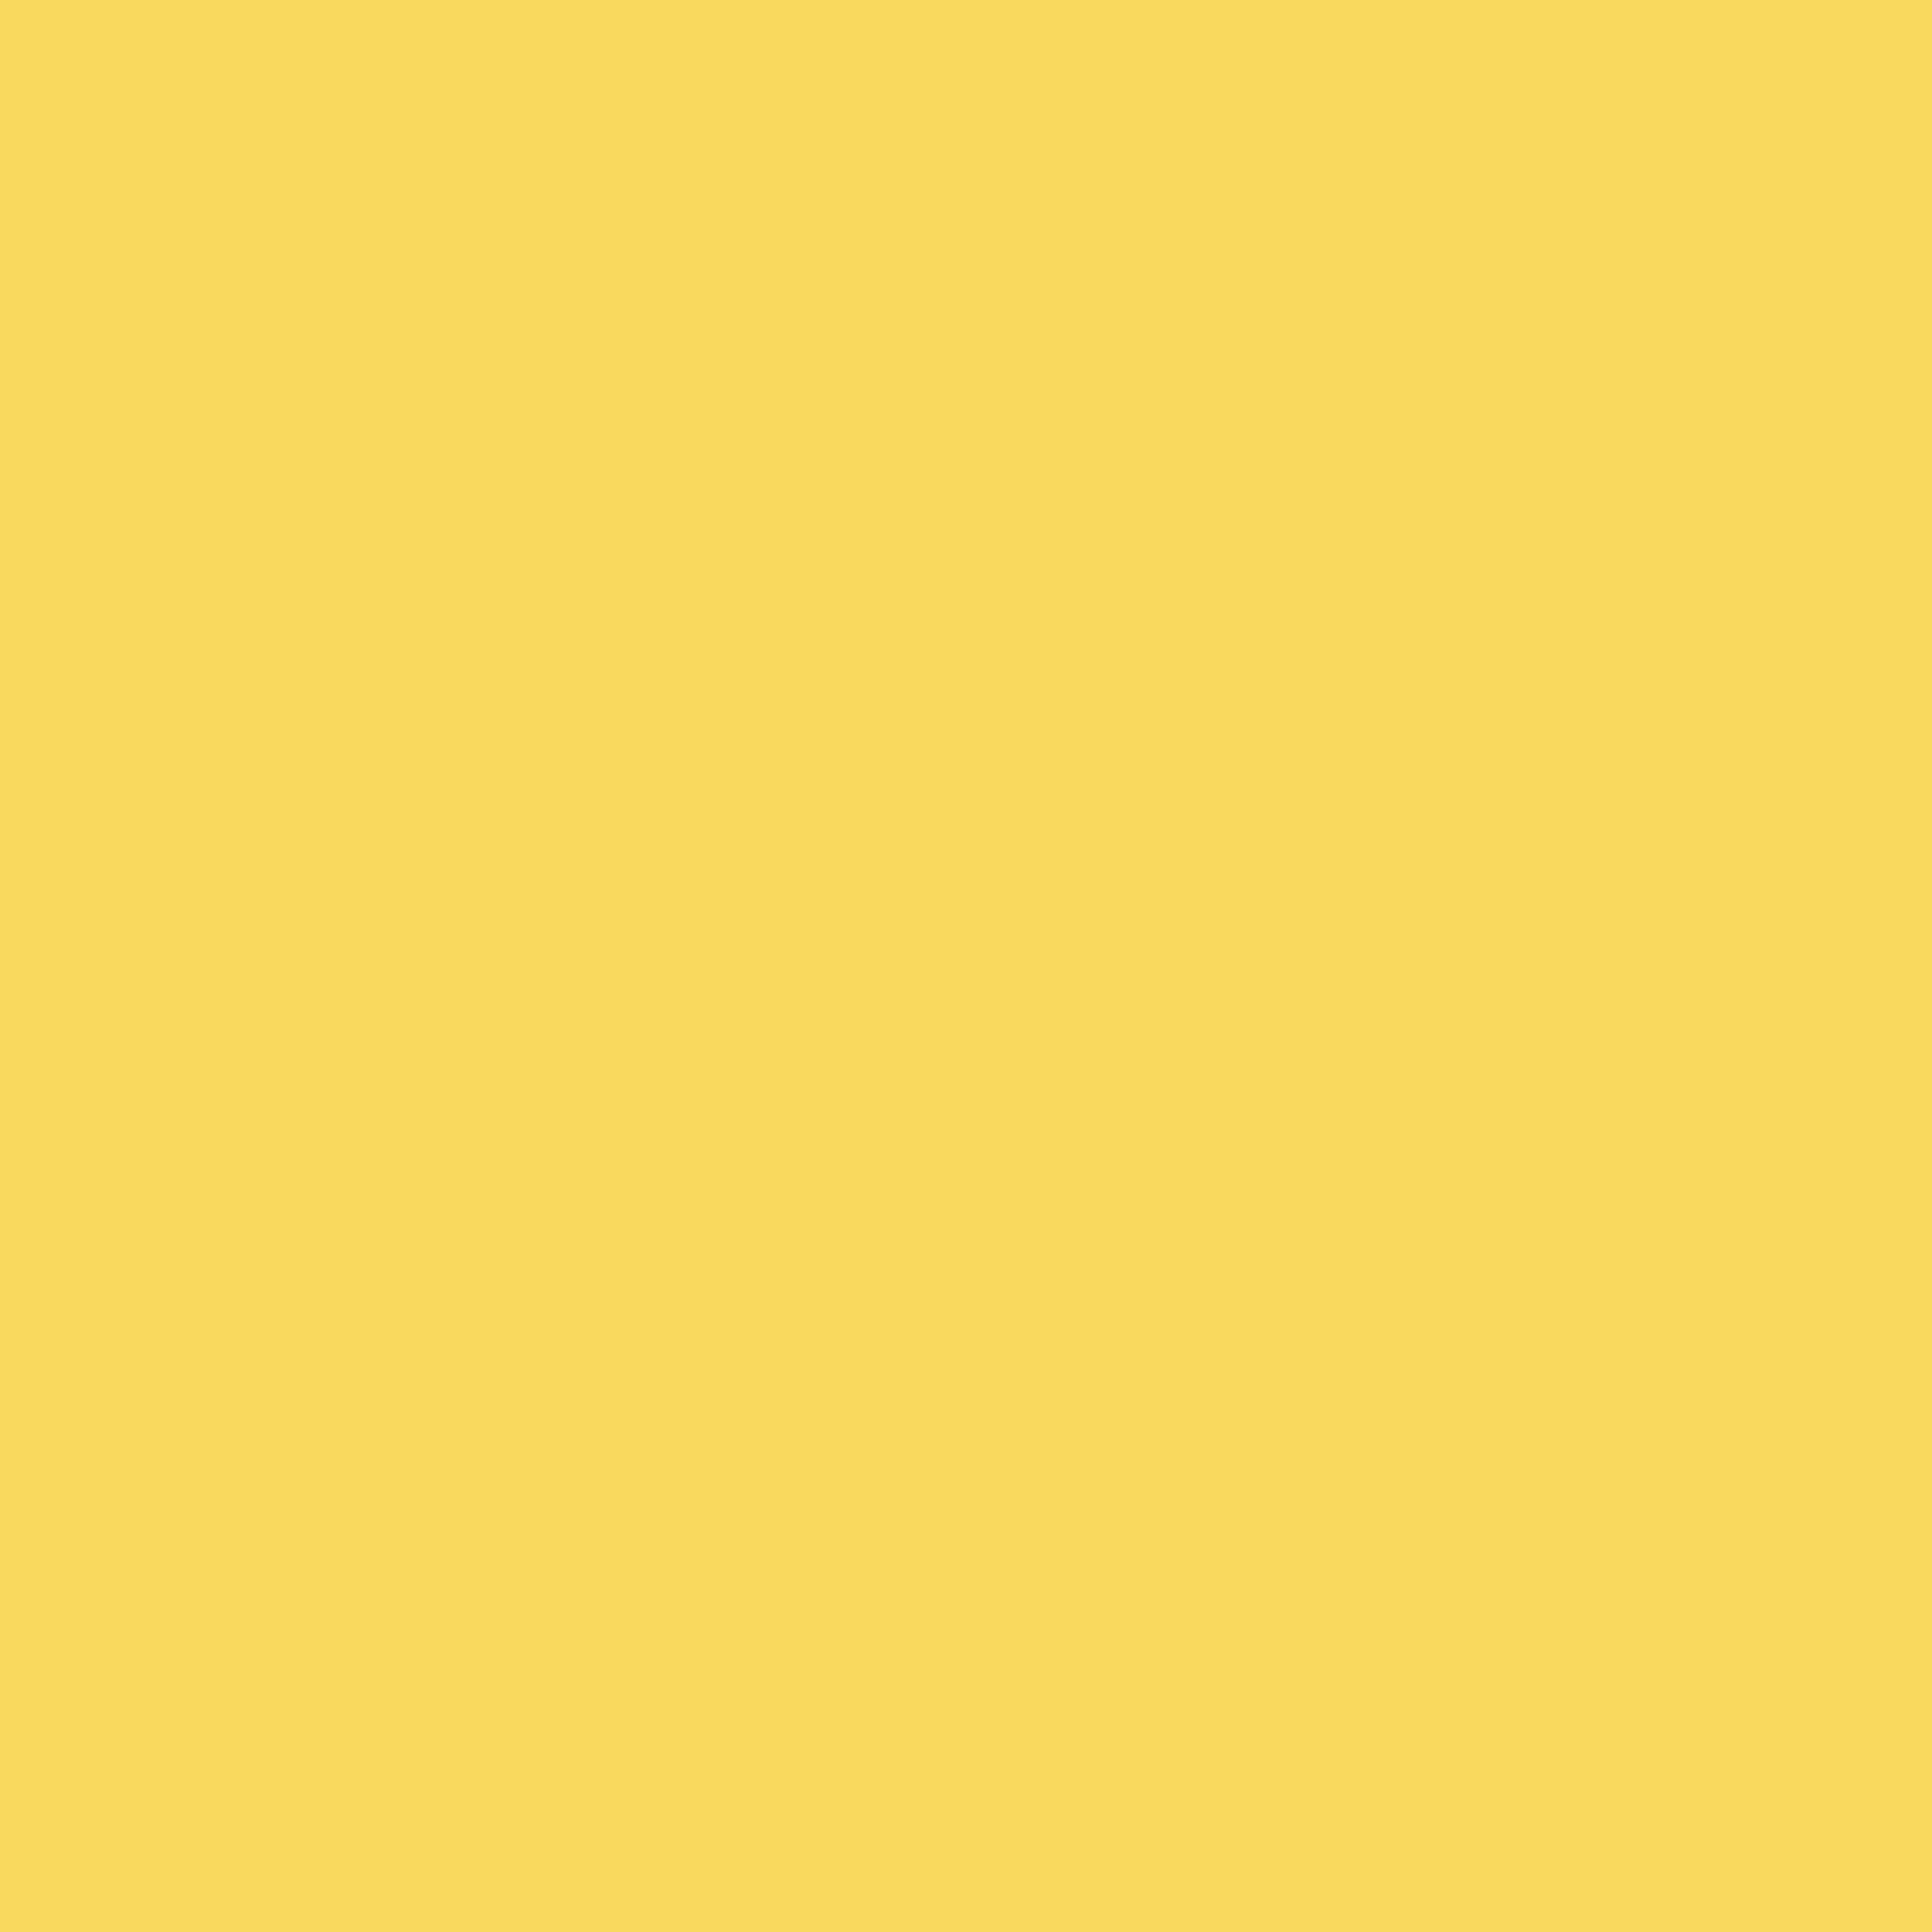 2048x2048 Royal Yellow Solid Color Background